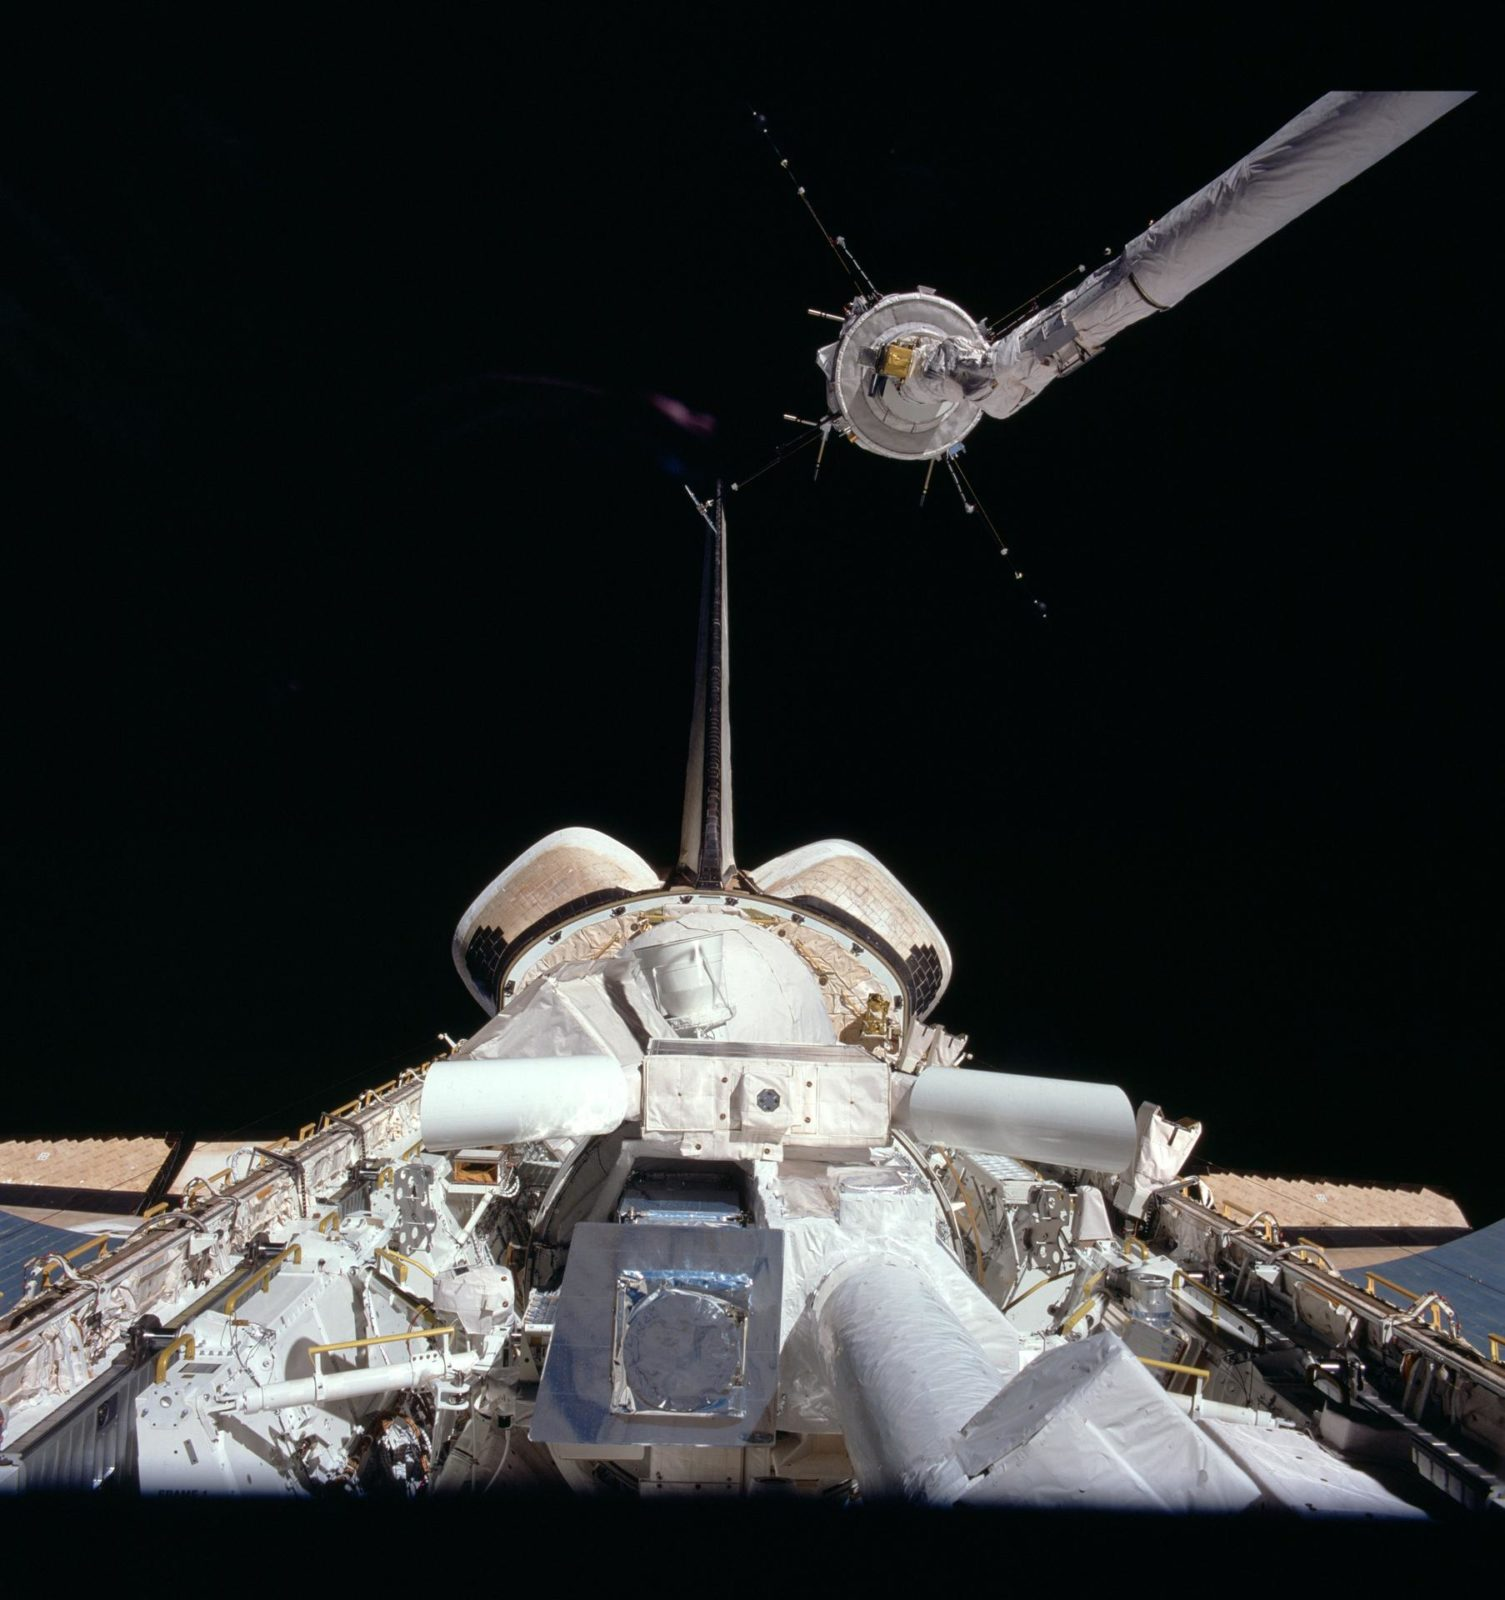 View of the Challenger's payload bay and the Plasma Diagnostic package